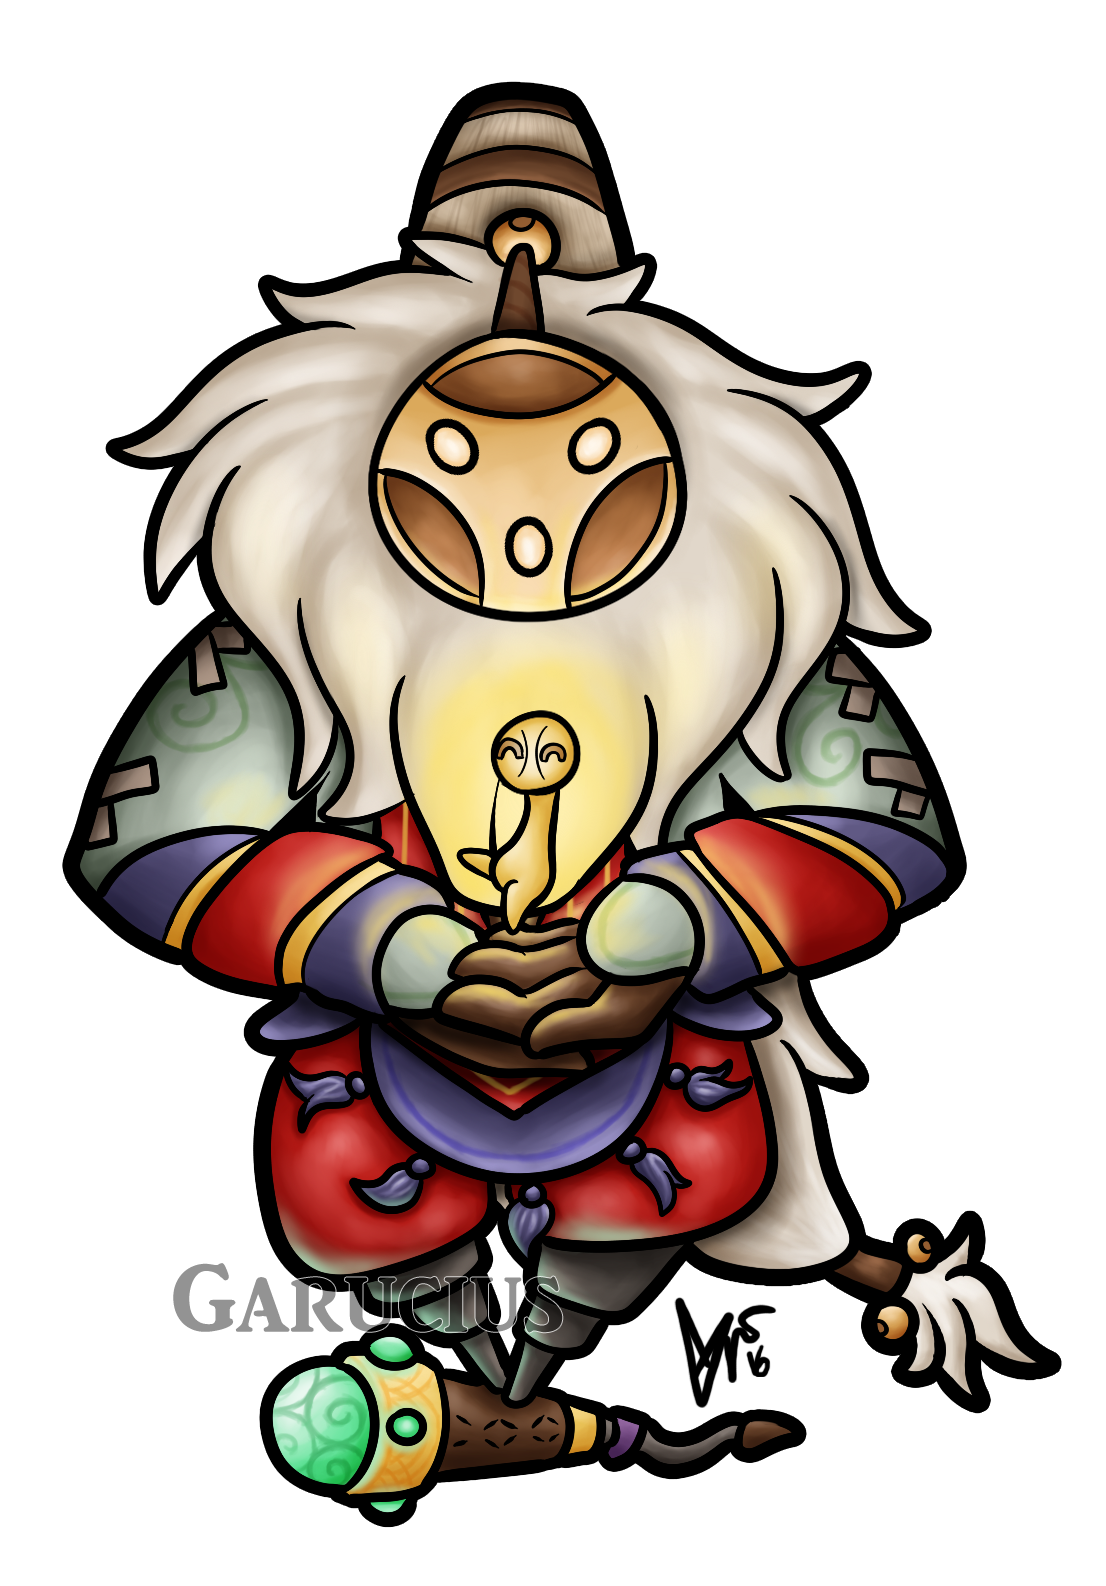 Chibi Bard by Garucius HD Wallpaper Artw-Chibi Bard by Garucius HD Wallpaper Artwork Fan Art League of Legends lol  (2)-14